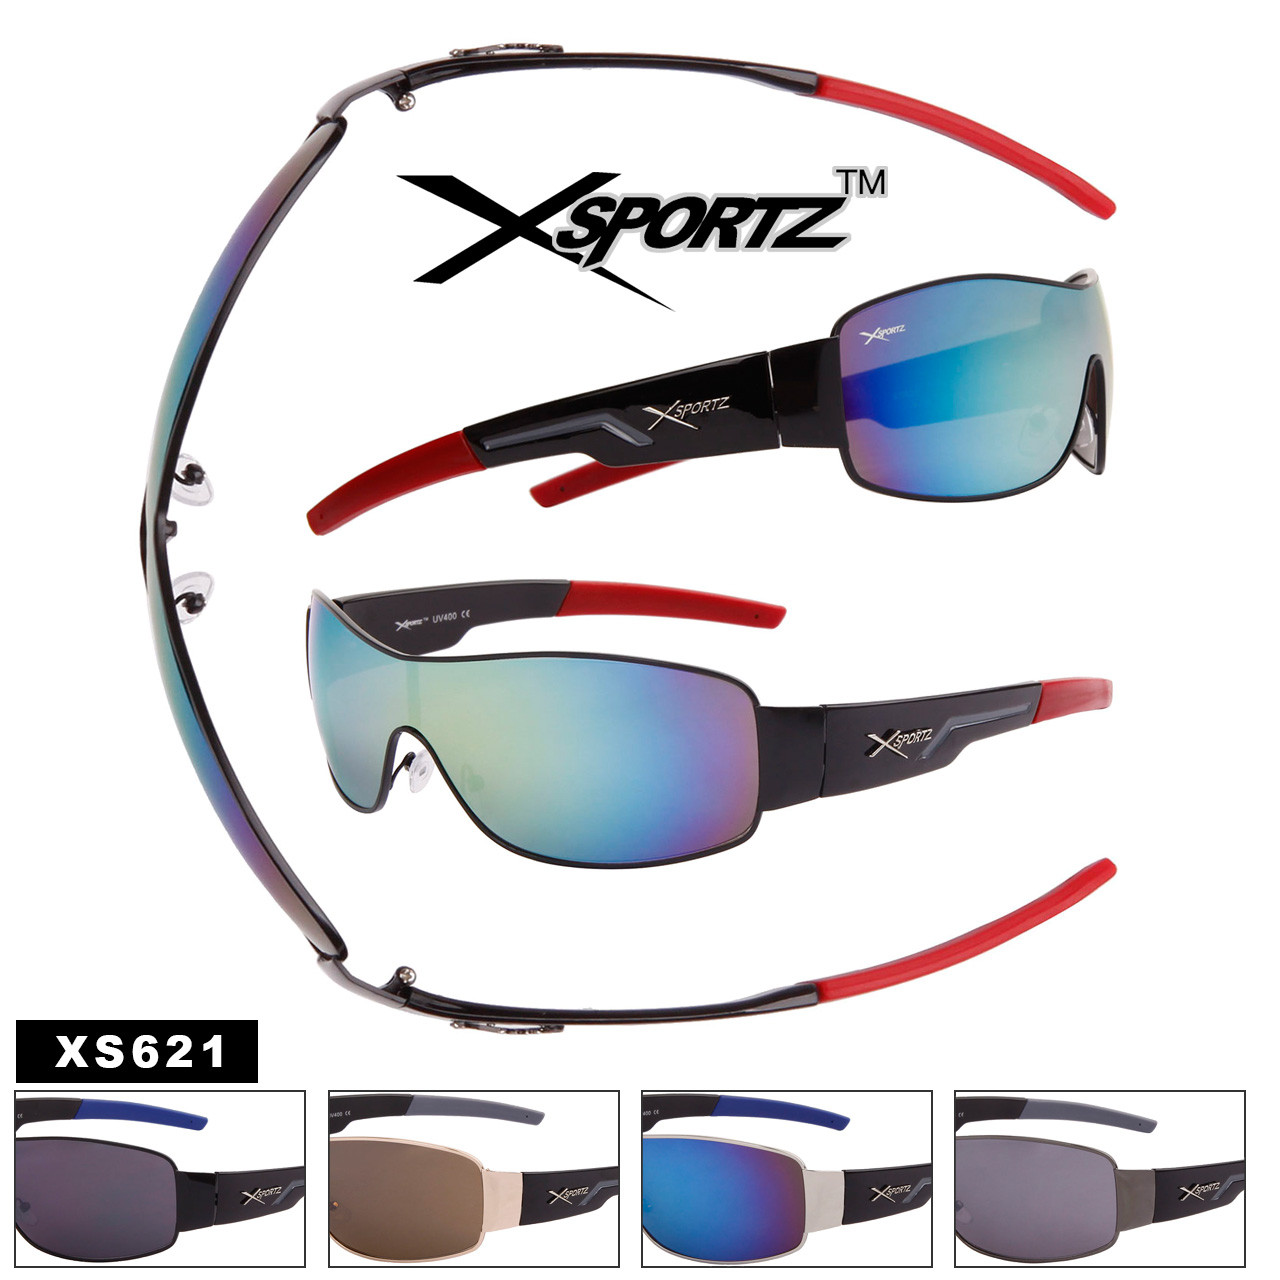 Xsportz™ Men's Single Piece Lens Sunglasses by the Dozen - Style #XS621